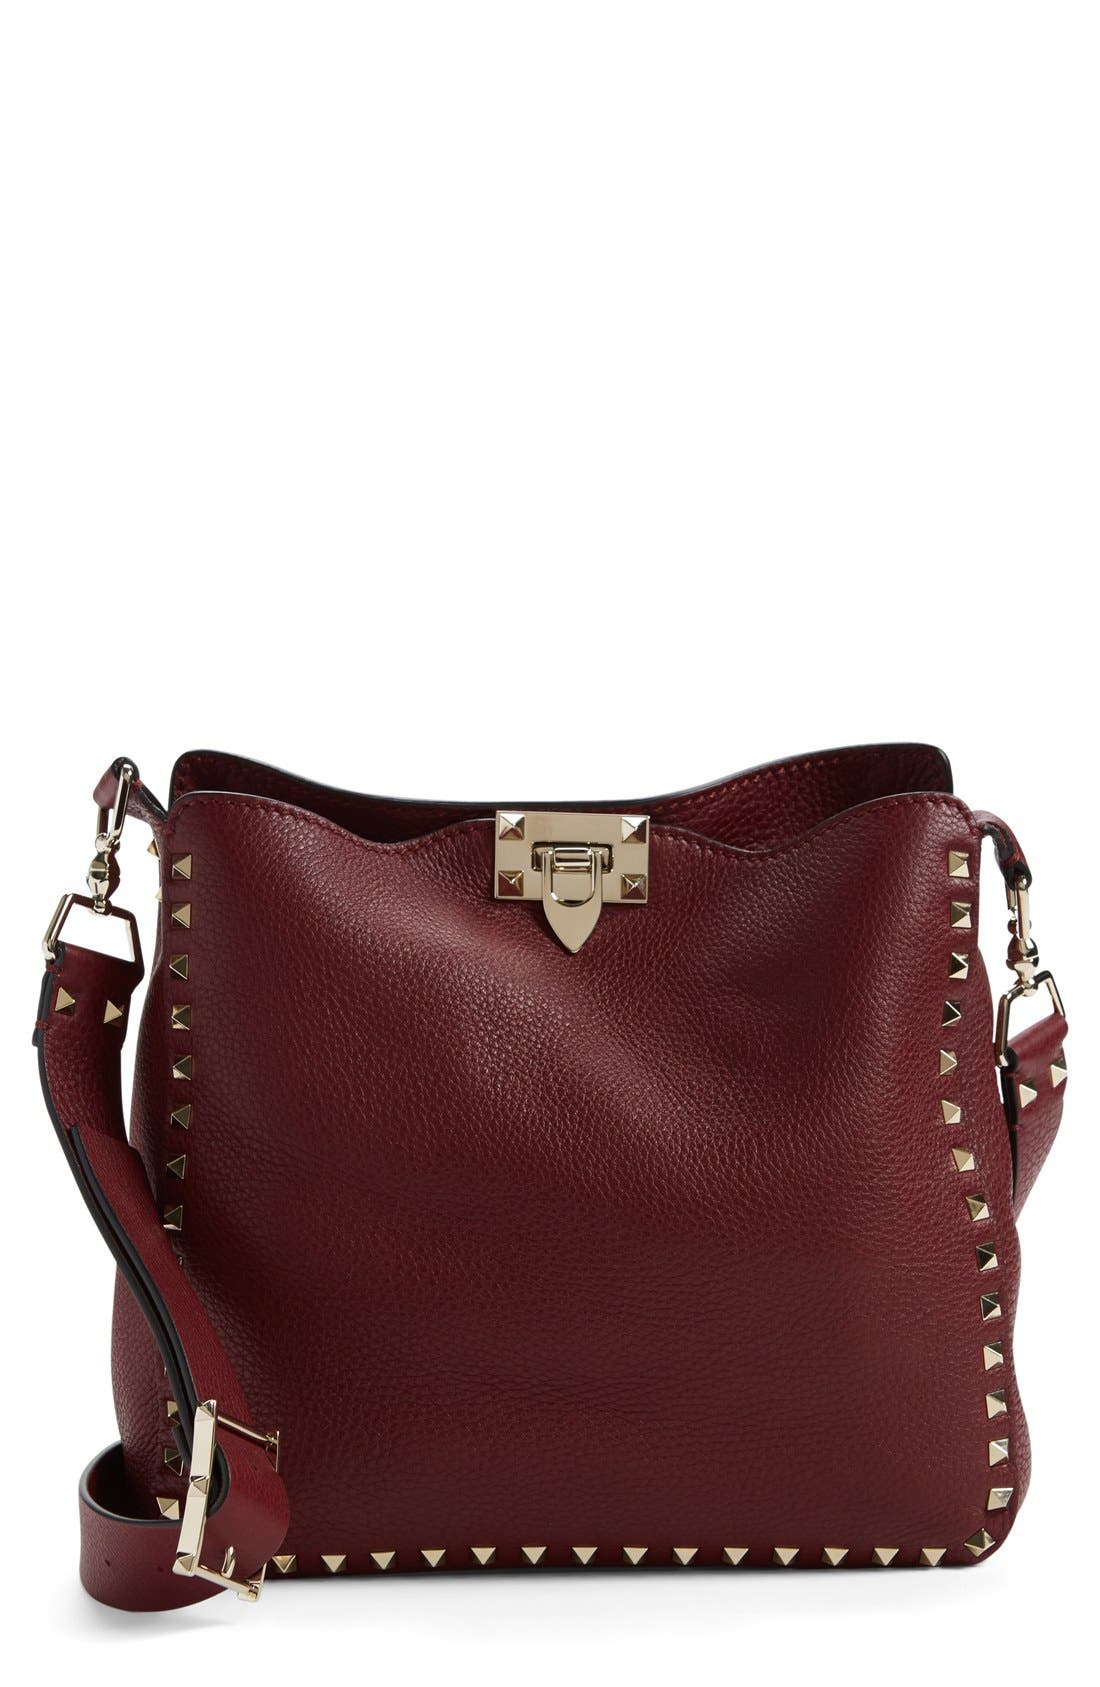 Alternate Image 1 Selected - Valentino 'Small Rockstud' Leather Hobo Bag